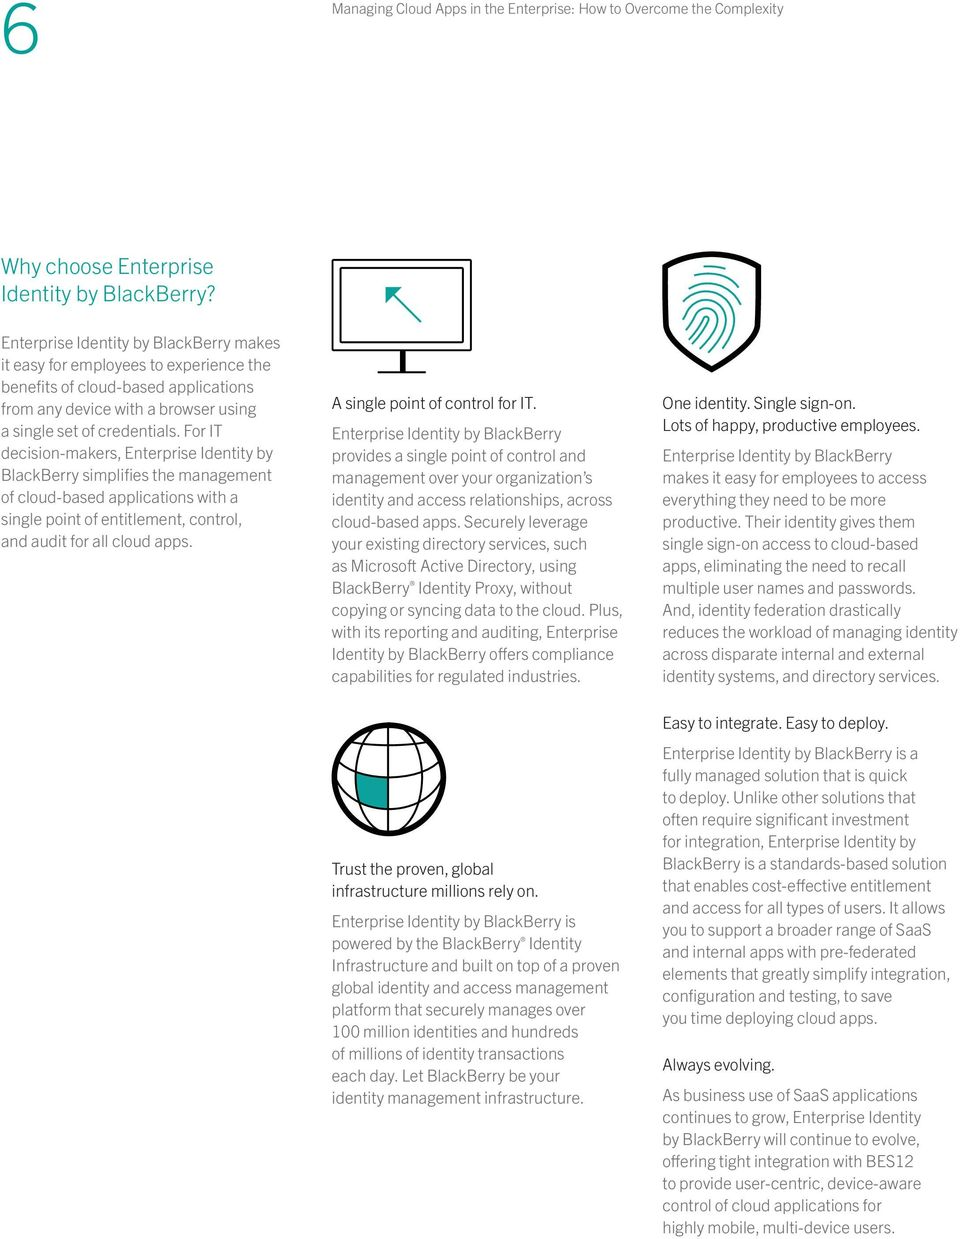 For IT decision-makers, Enterprise Identity by BlackBerry simplifies the management of cloud-based applications with a single point of entitlement, control, and audit for all cloud apps.